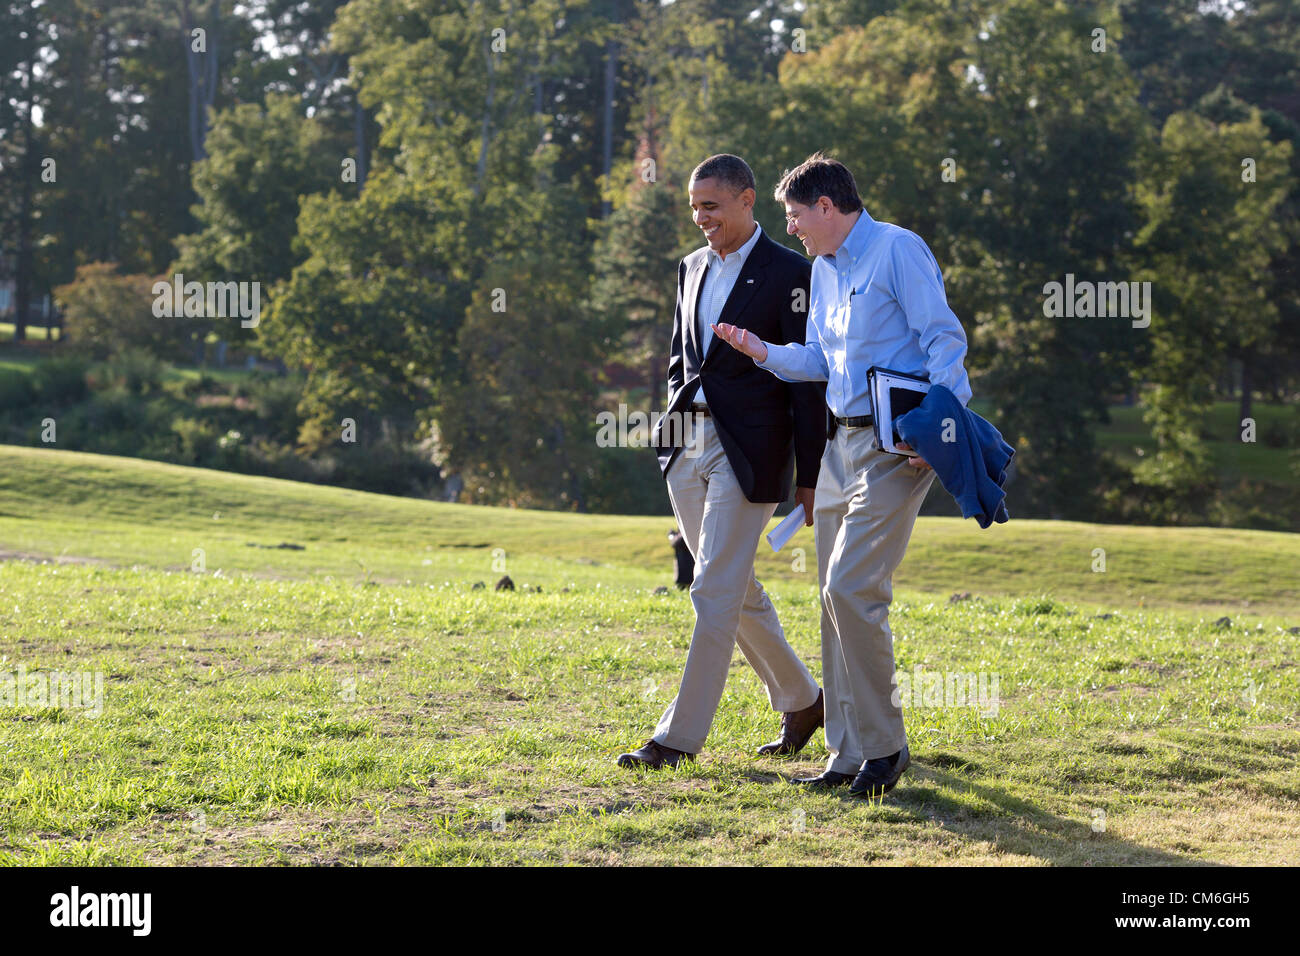 US President Barack Obama walks with Chief of Staff Jack Lew during a break from debate preparations October 14, - Stock Image